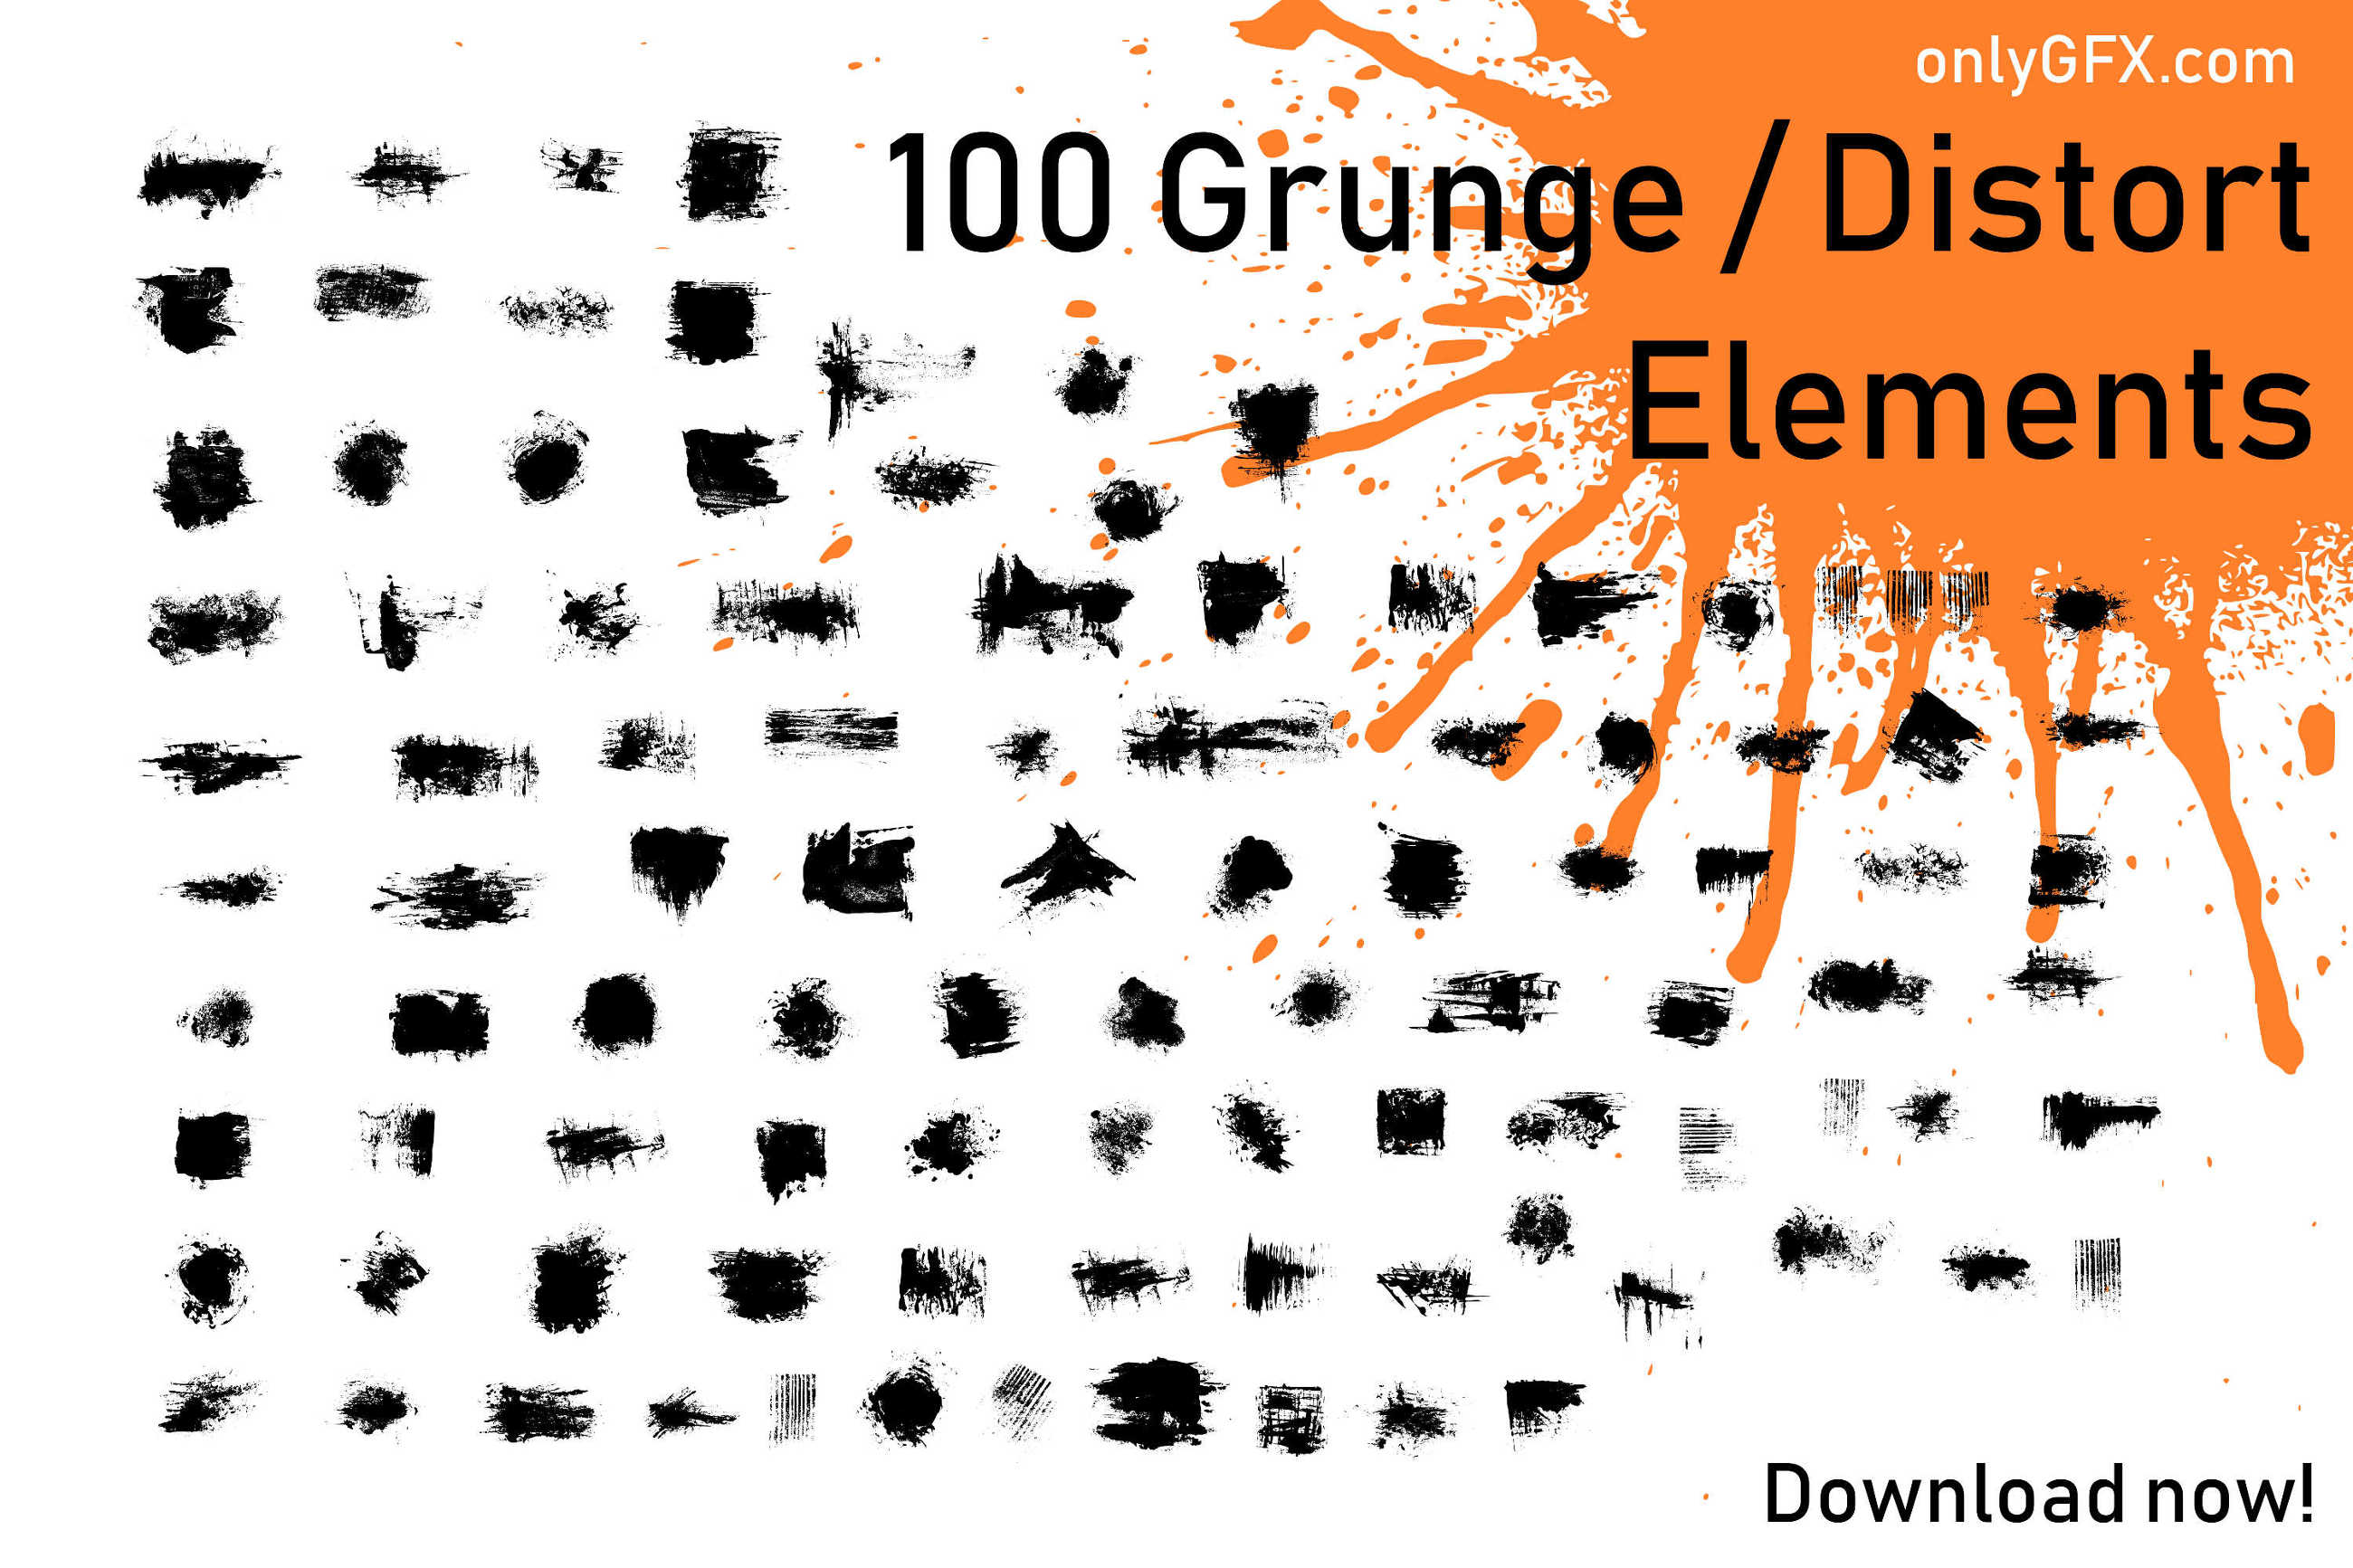 Download 100 Grunge Distort Elements in PNG Transparent | OnlyGFX com